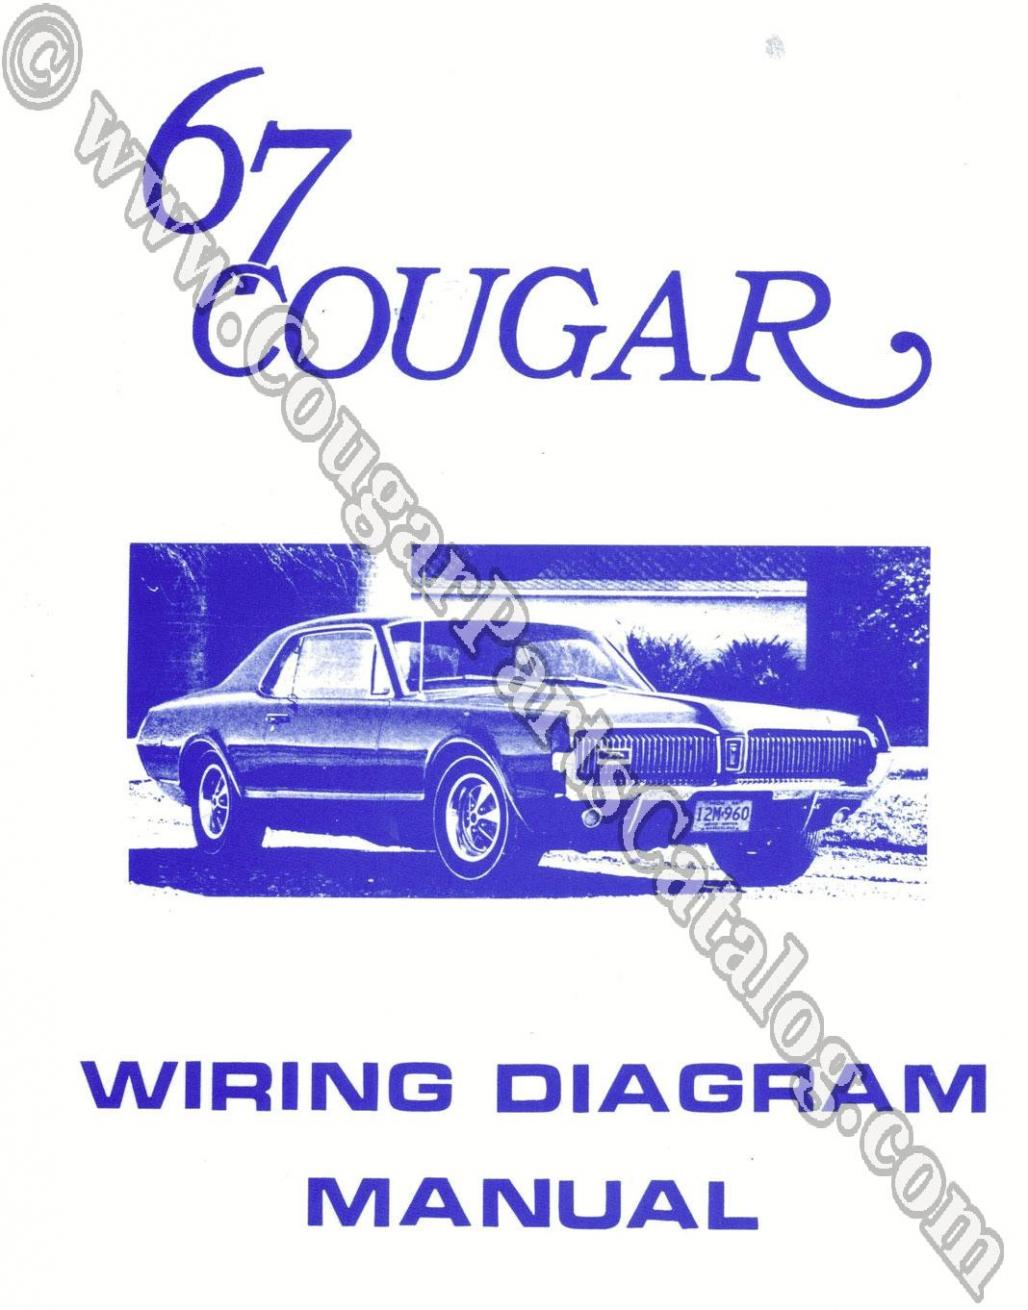 hight resolution of 67 cougar wiring harness schematic wiring diagrams system67 cougar wiring harness schematic schema diagram database 67